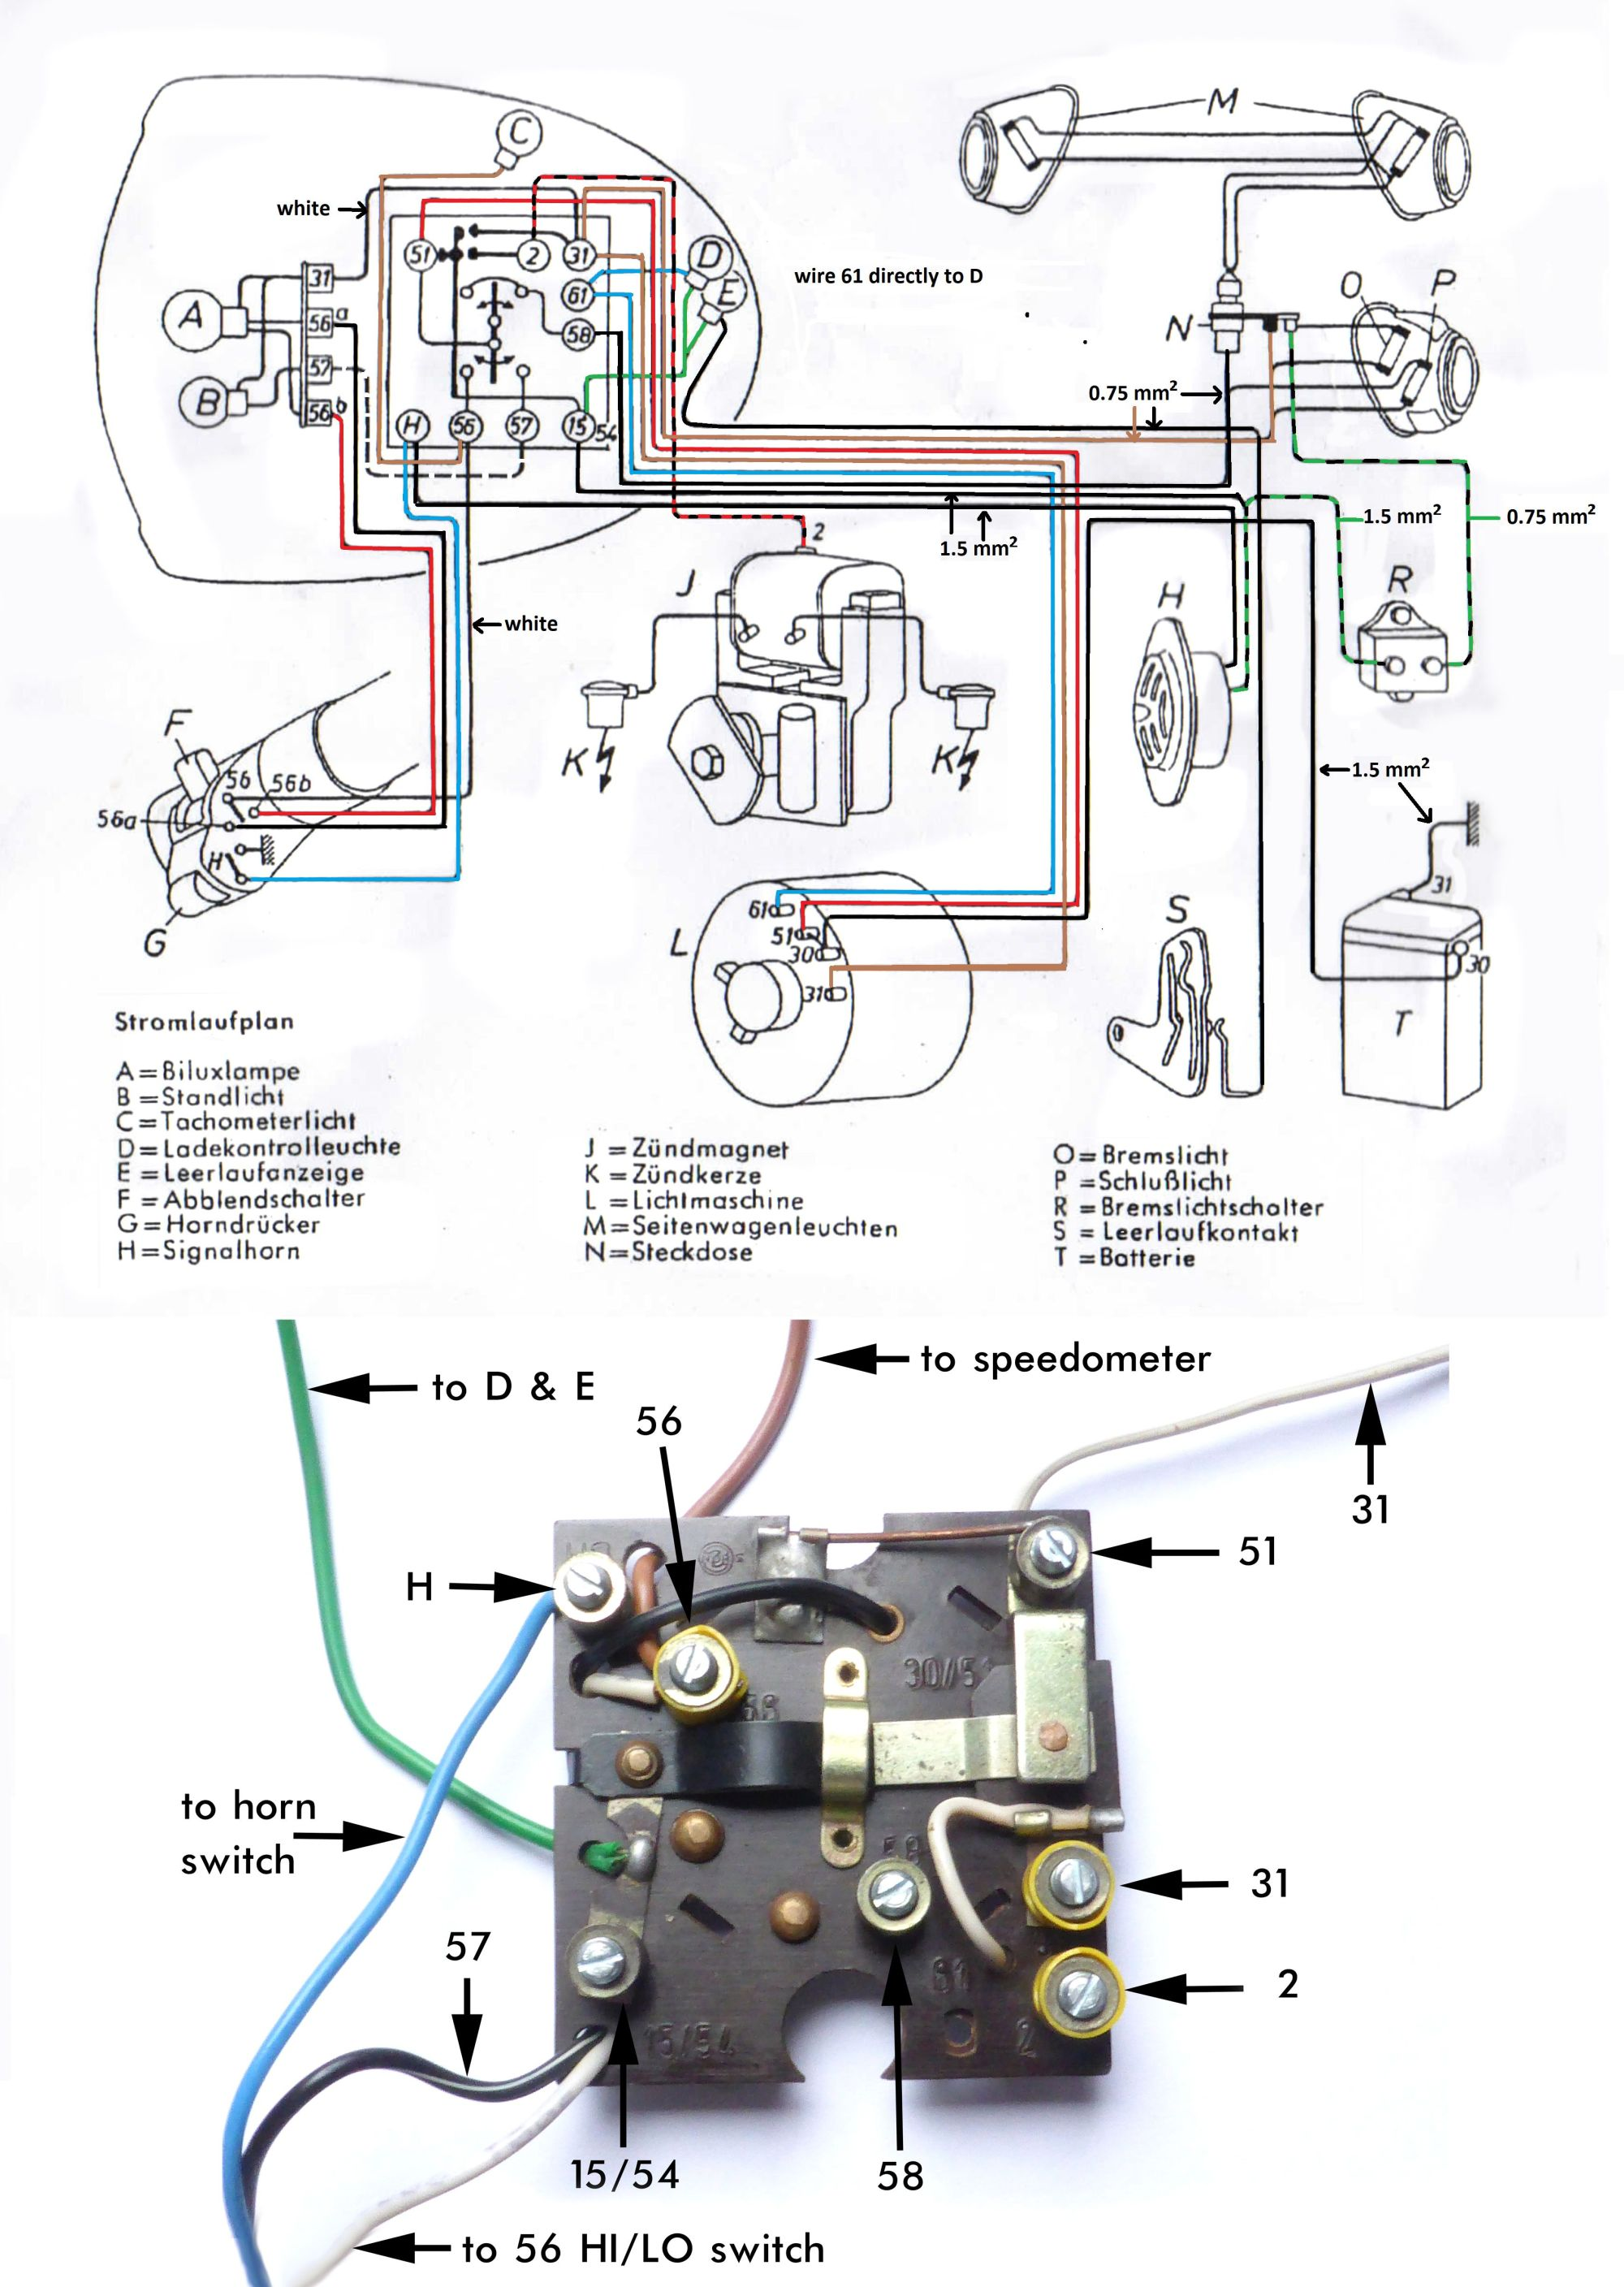 hight resolution of bmw 2 wiring diagram wiring diagram fascinatingbmw 2 wiring diagram wiring diagram article bmw r50 2